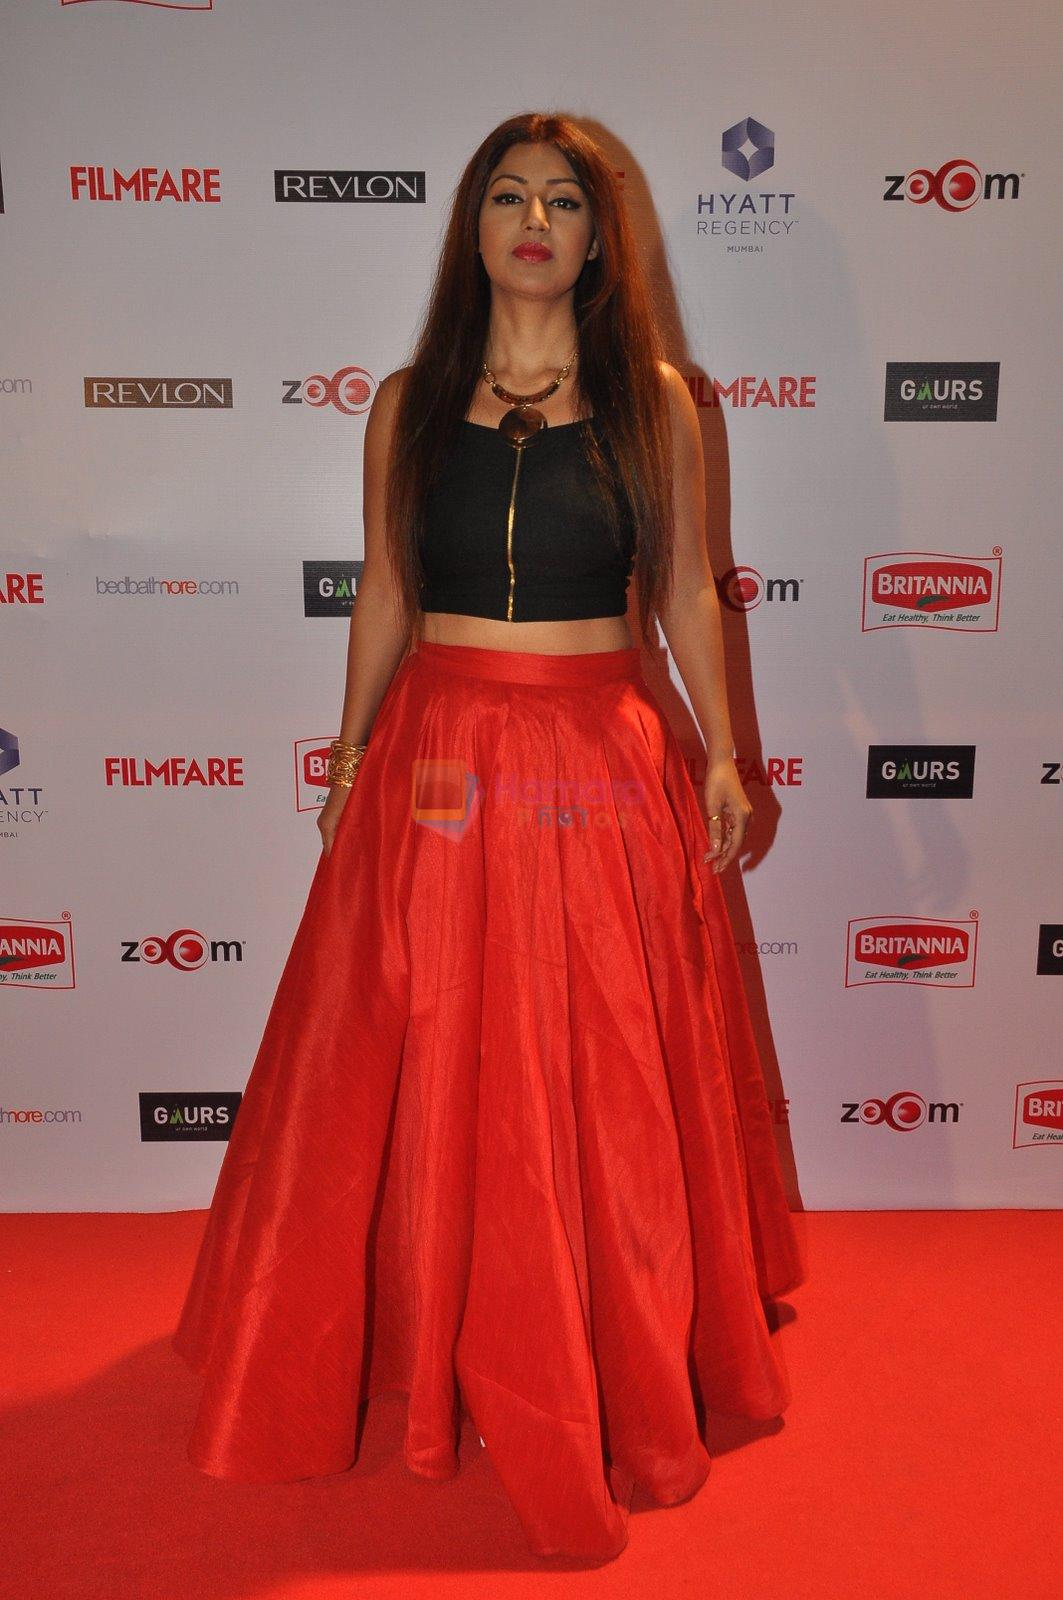 Debina Bonerjee at Filmfare Nominations bash in Hyatt Regency, Mumbai on 22nd Jan 2015